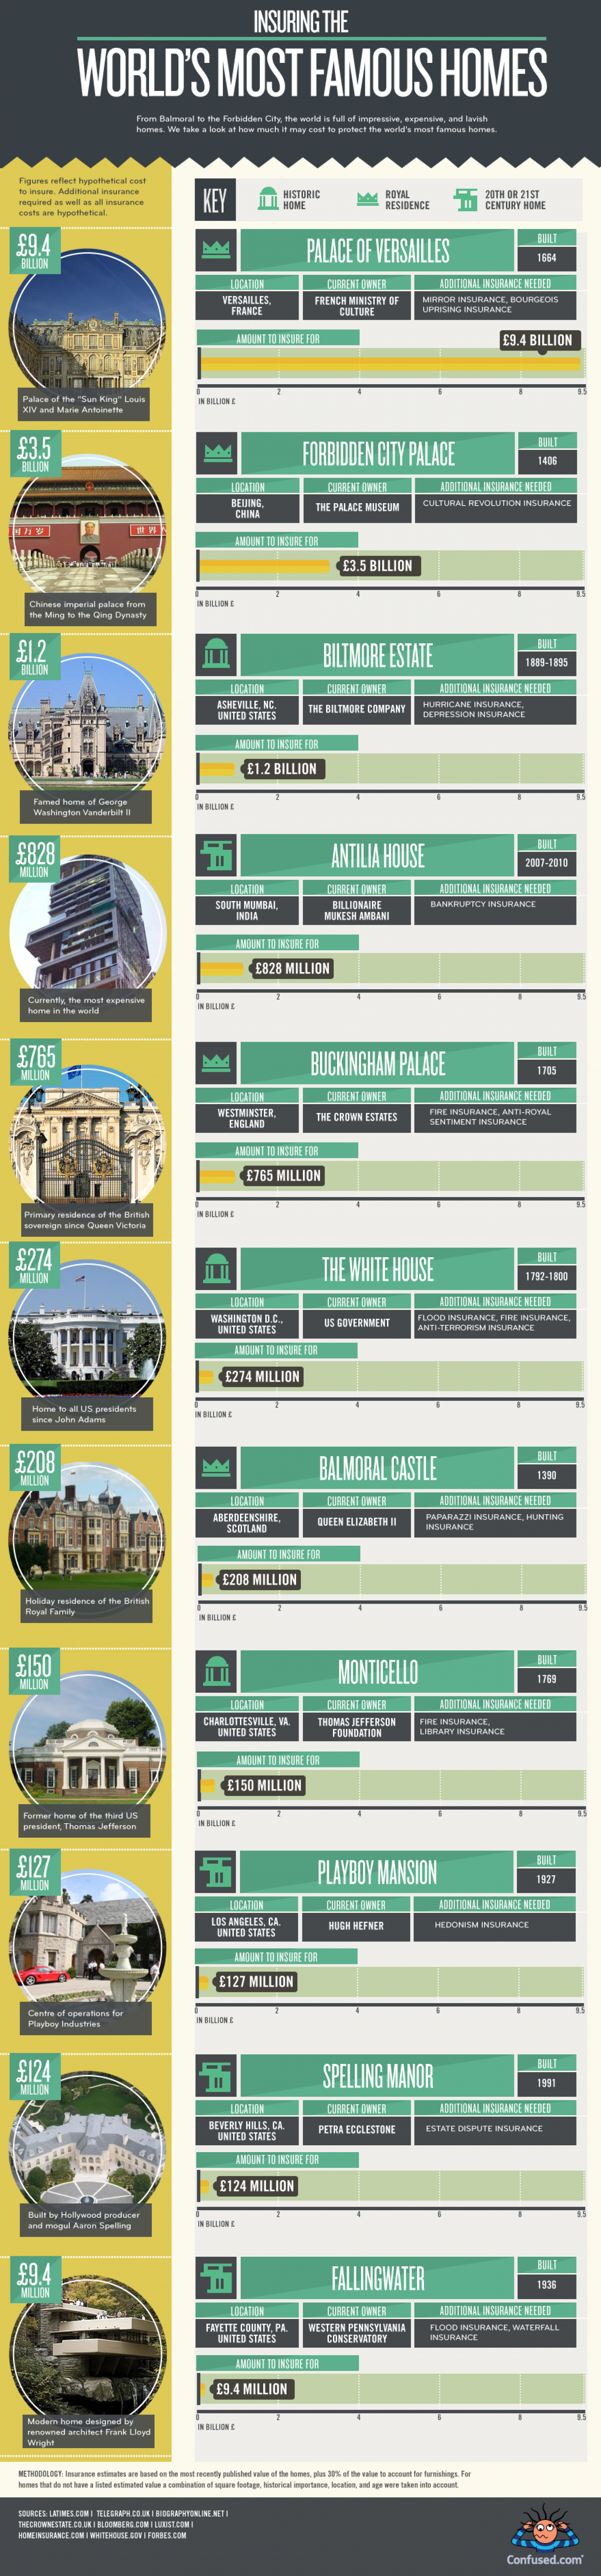 Insuring the World's Most Famous Homes Infographic